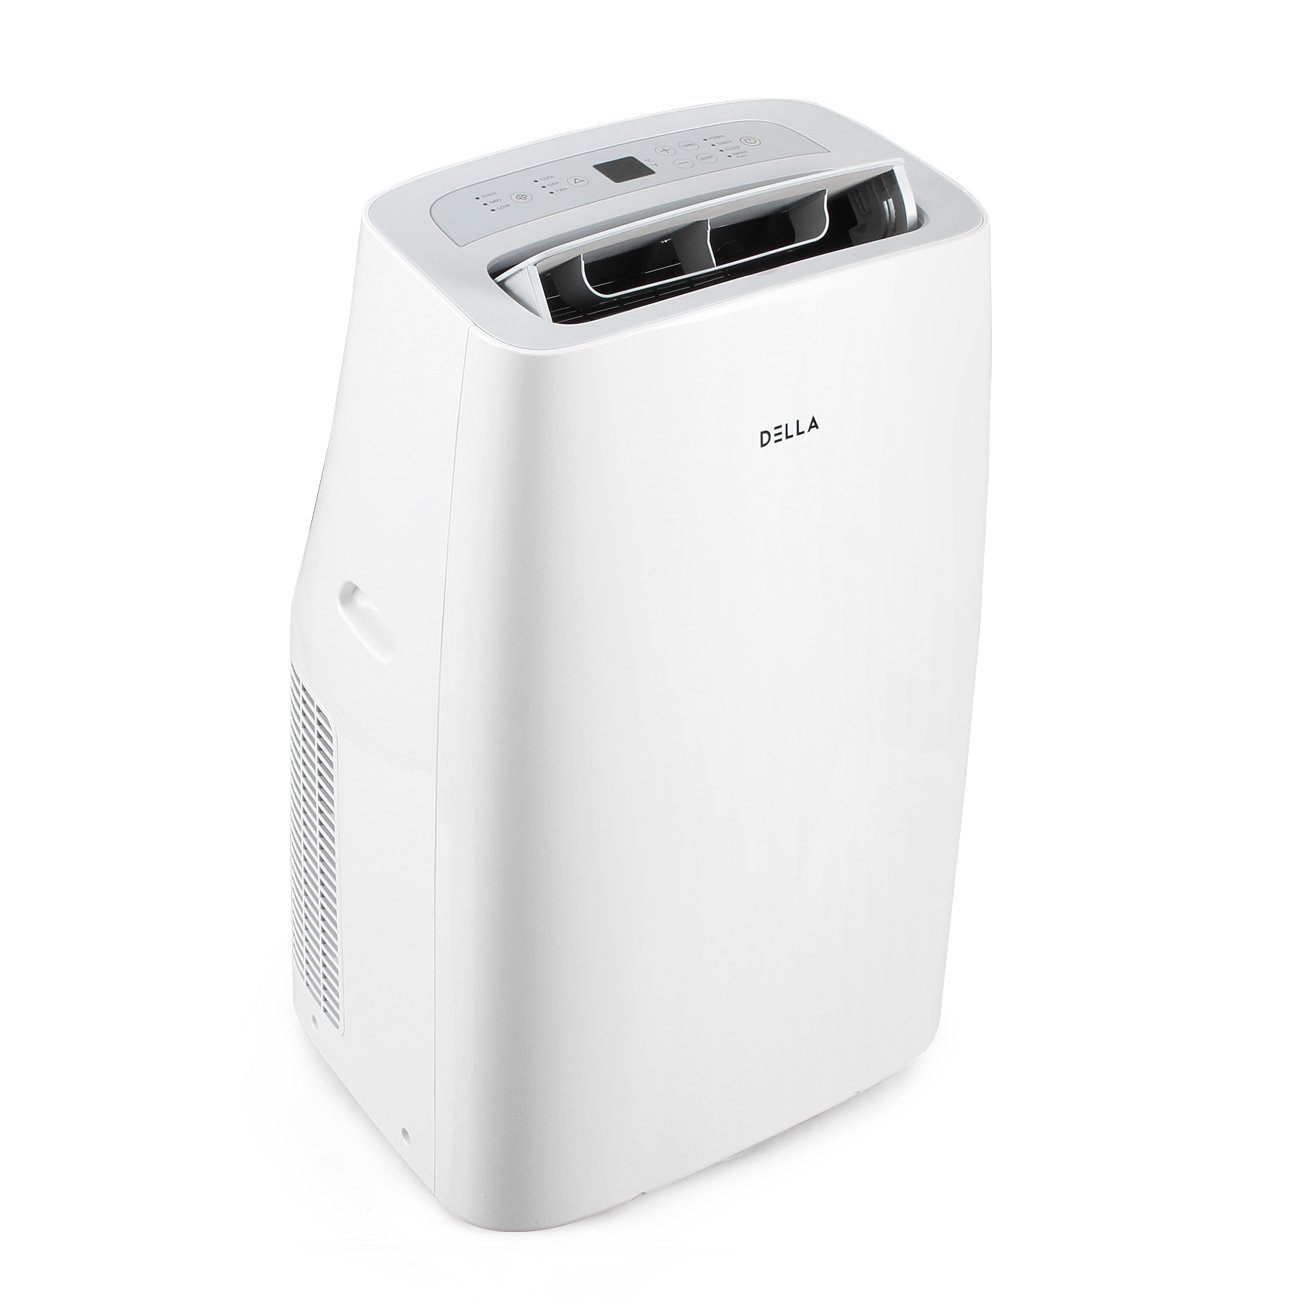 DELLA 12,000 BTU Cooling Portable Air Conditioner Quiet Cool Fan Dehumidifier LCD for Rooms Up To 400 Sq. Ft. Remote Control, White